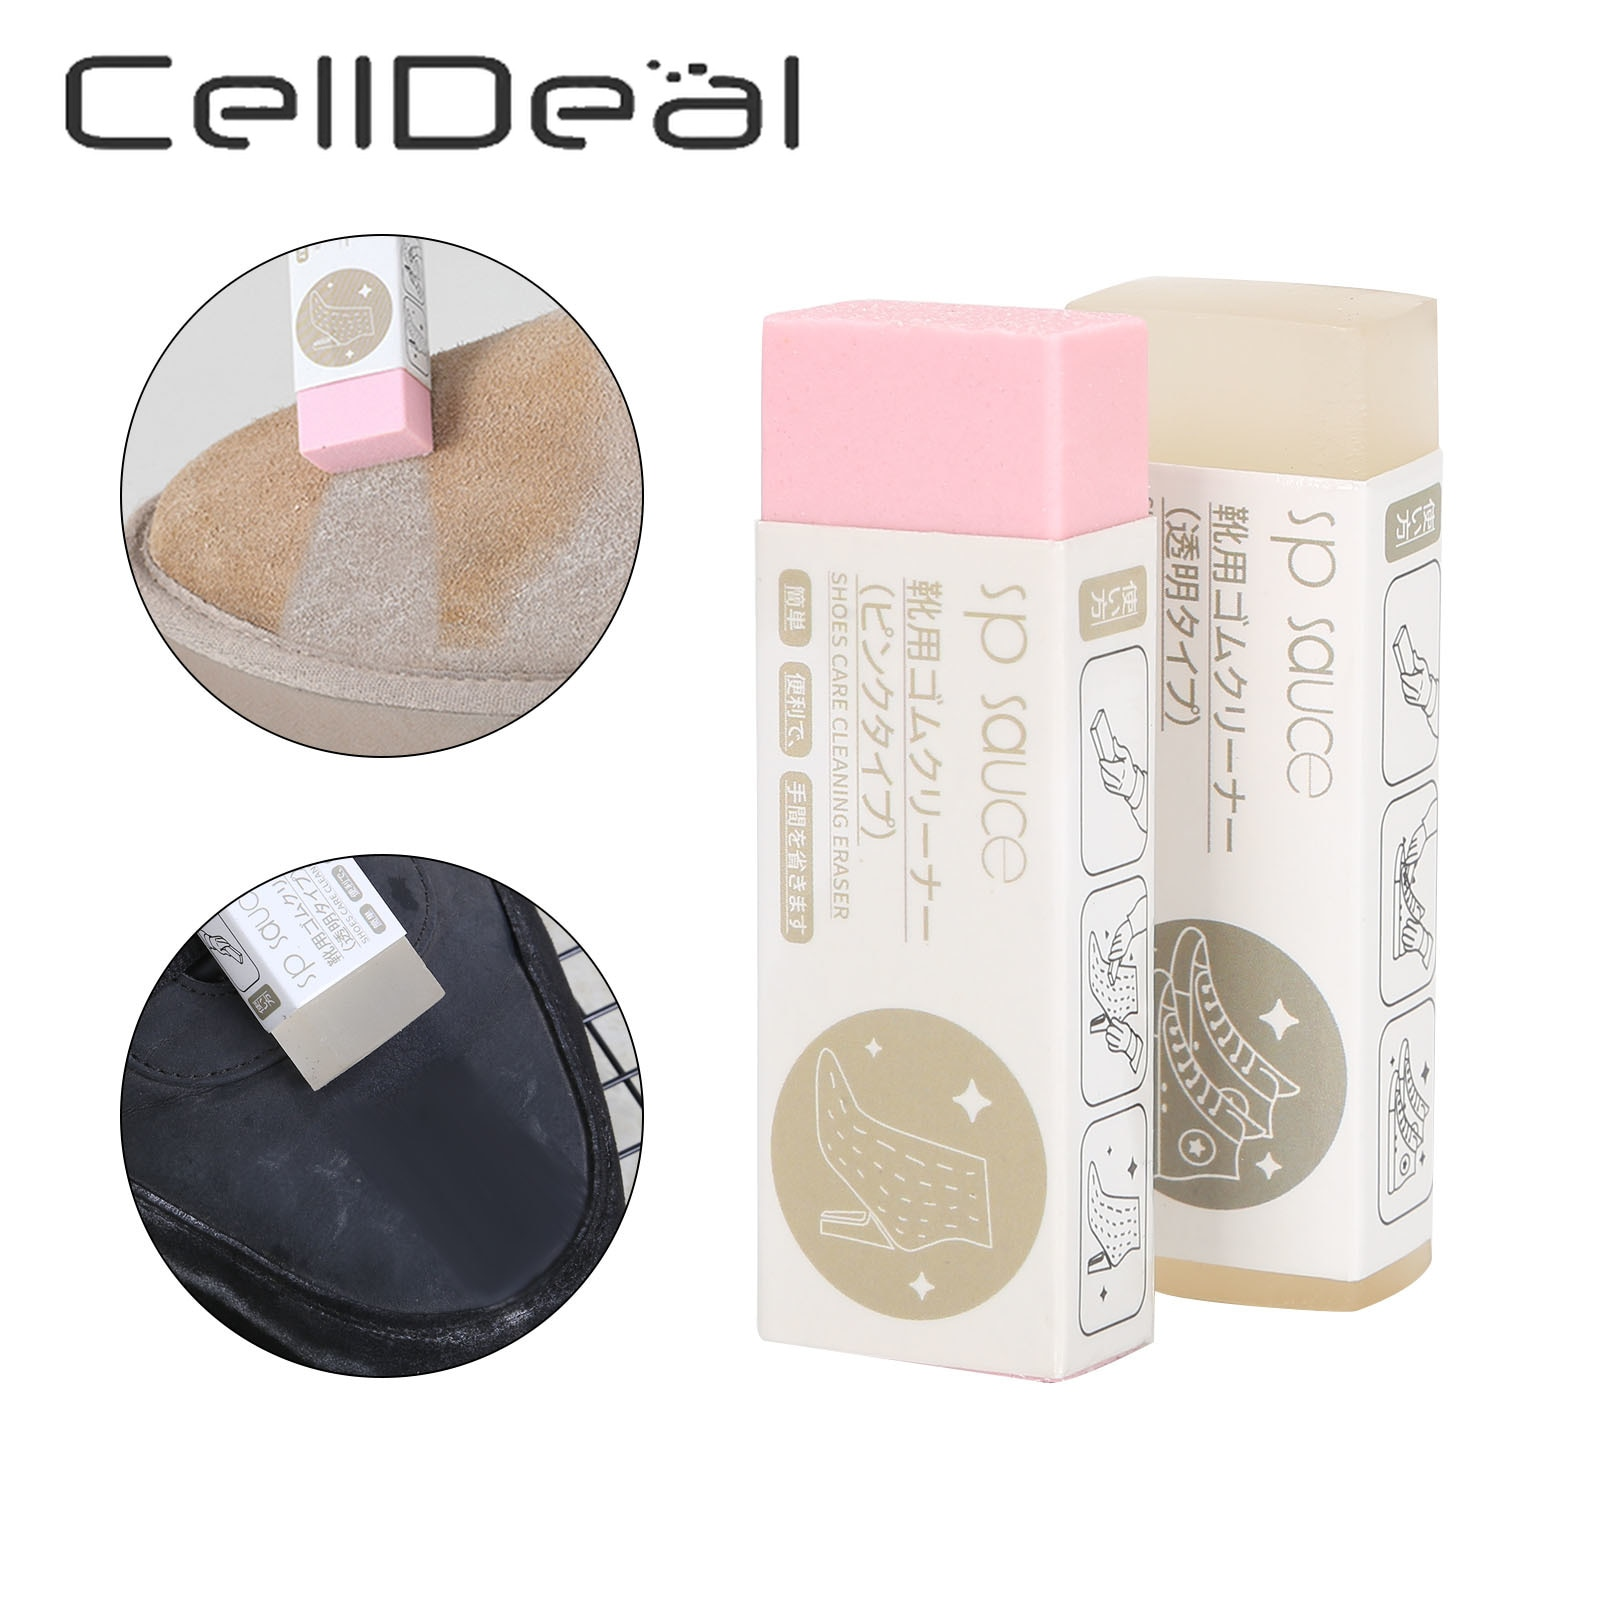 1Pc Cleaning Eraser Suede Shoes Stain Cleaning Tool Sheepskin Matte Leather Fabric Cleaning Care Sho